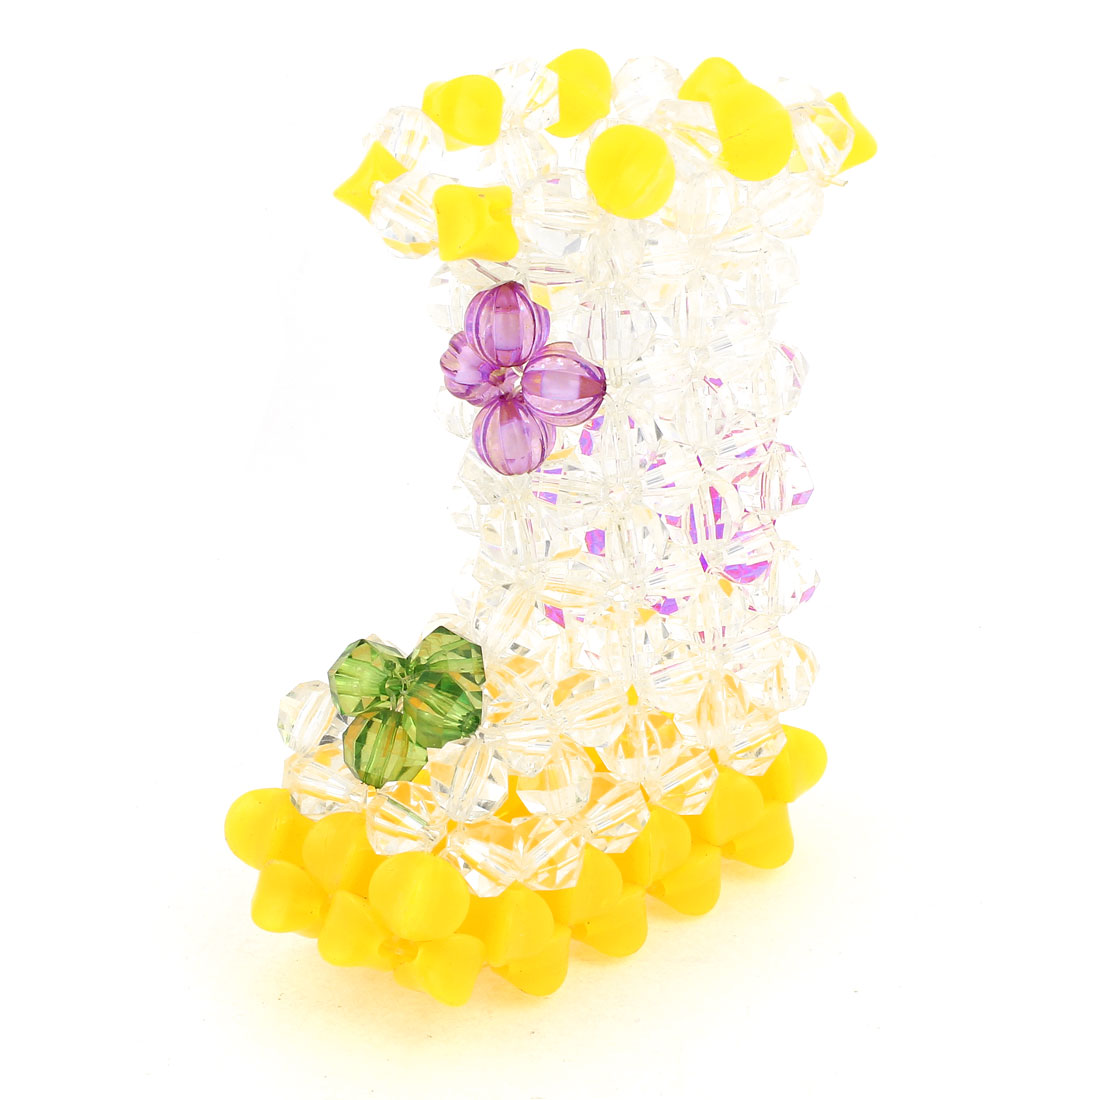 Yellow Clear Boot Shaped Handcraft Plastic Crystal Beads Vase Craft Home Ornaments 4.7""